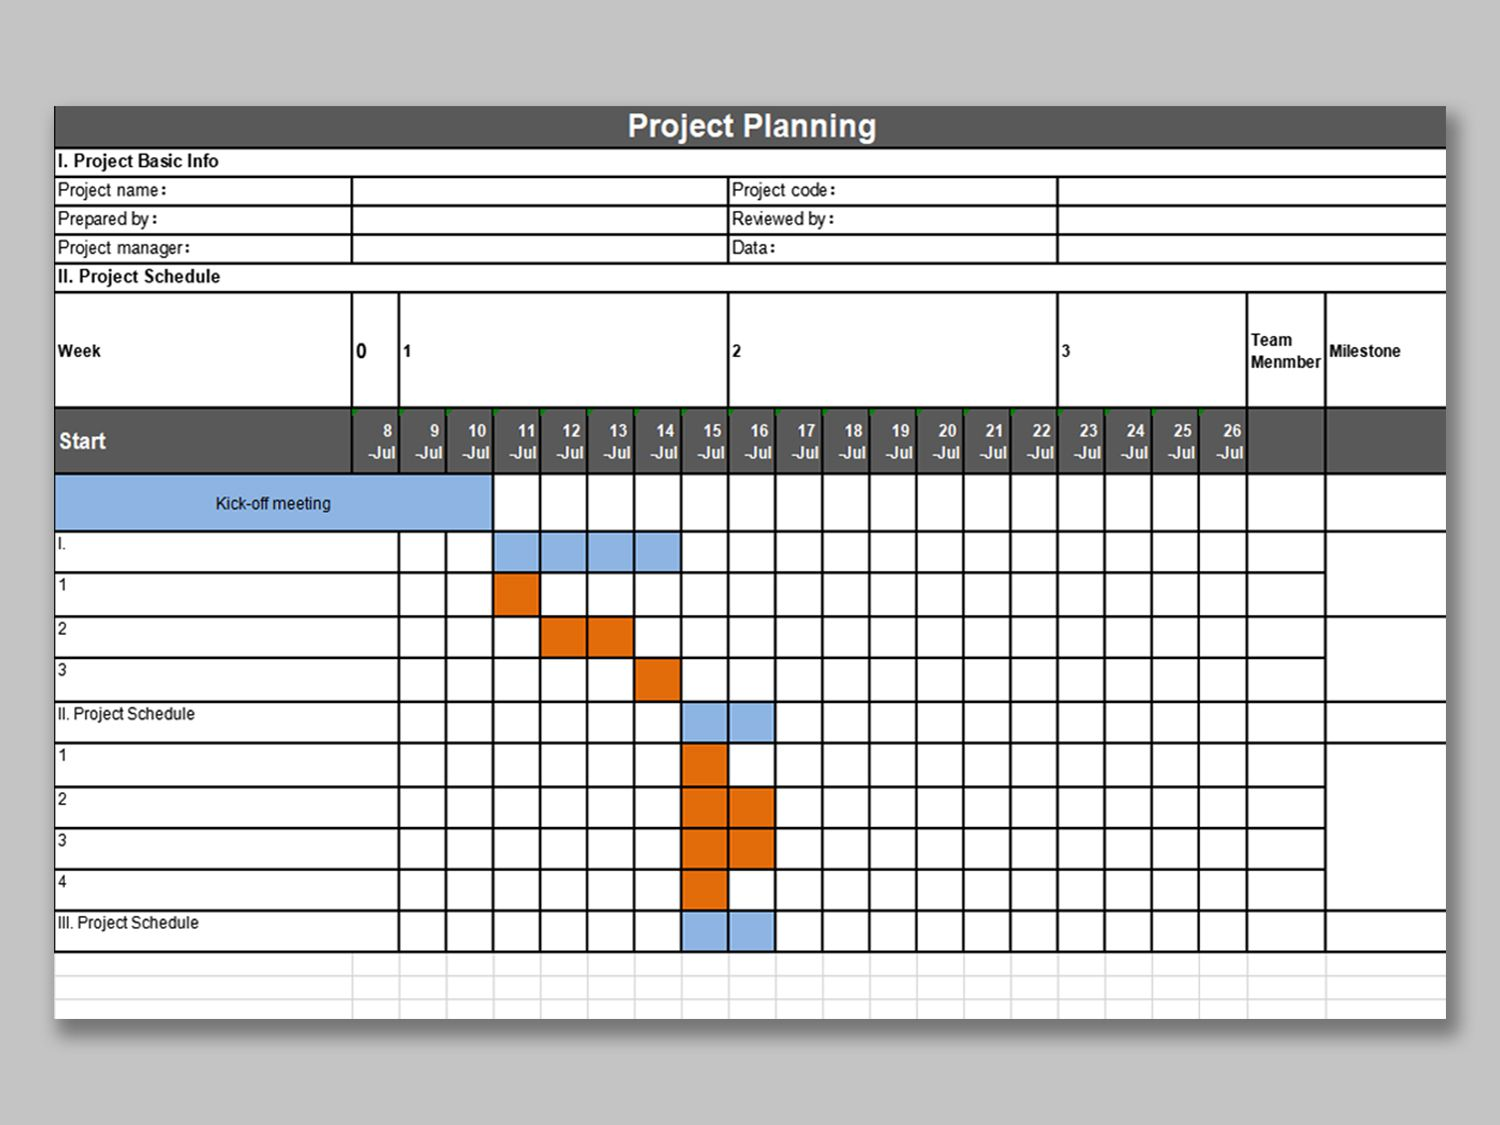 002 Frightening Project Management Template Free Download Image  Excel WebsiteFull